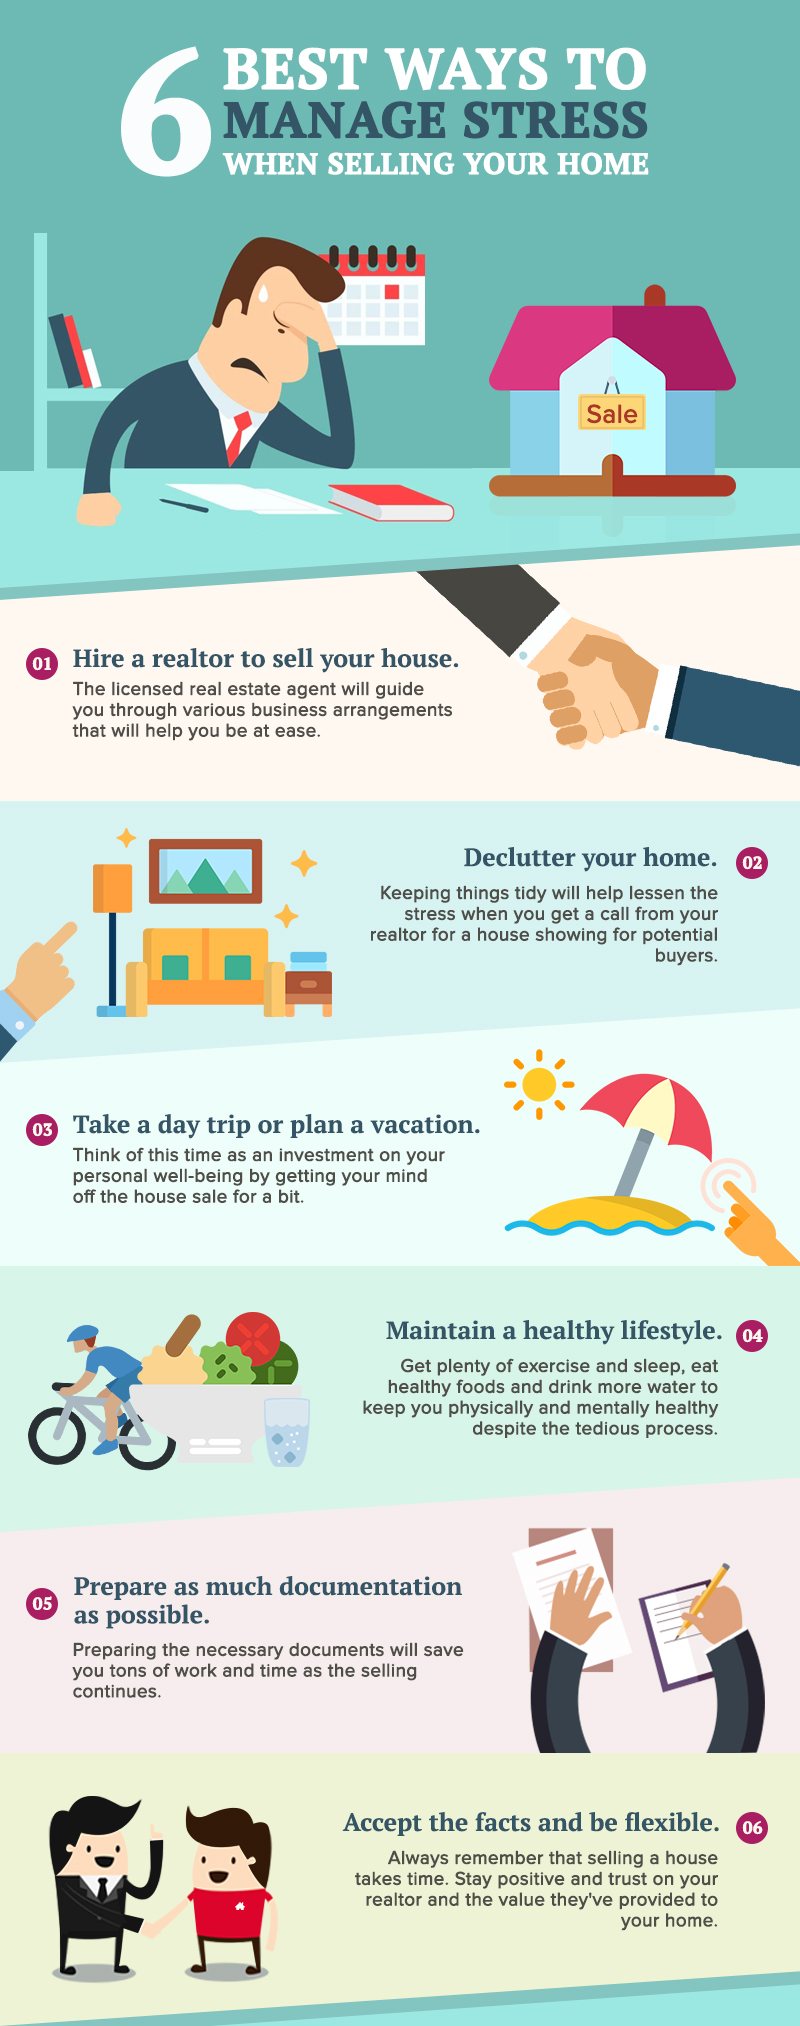 6 Of The Best Ways to Manage Stress When Selling Your Home